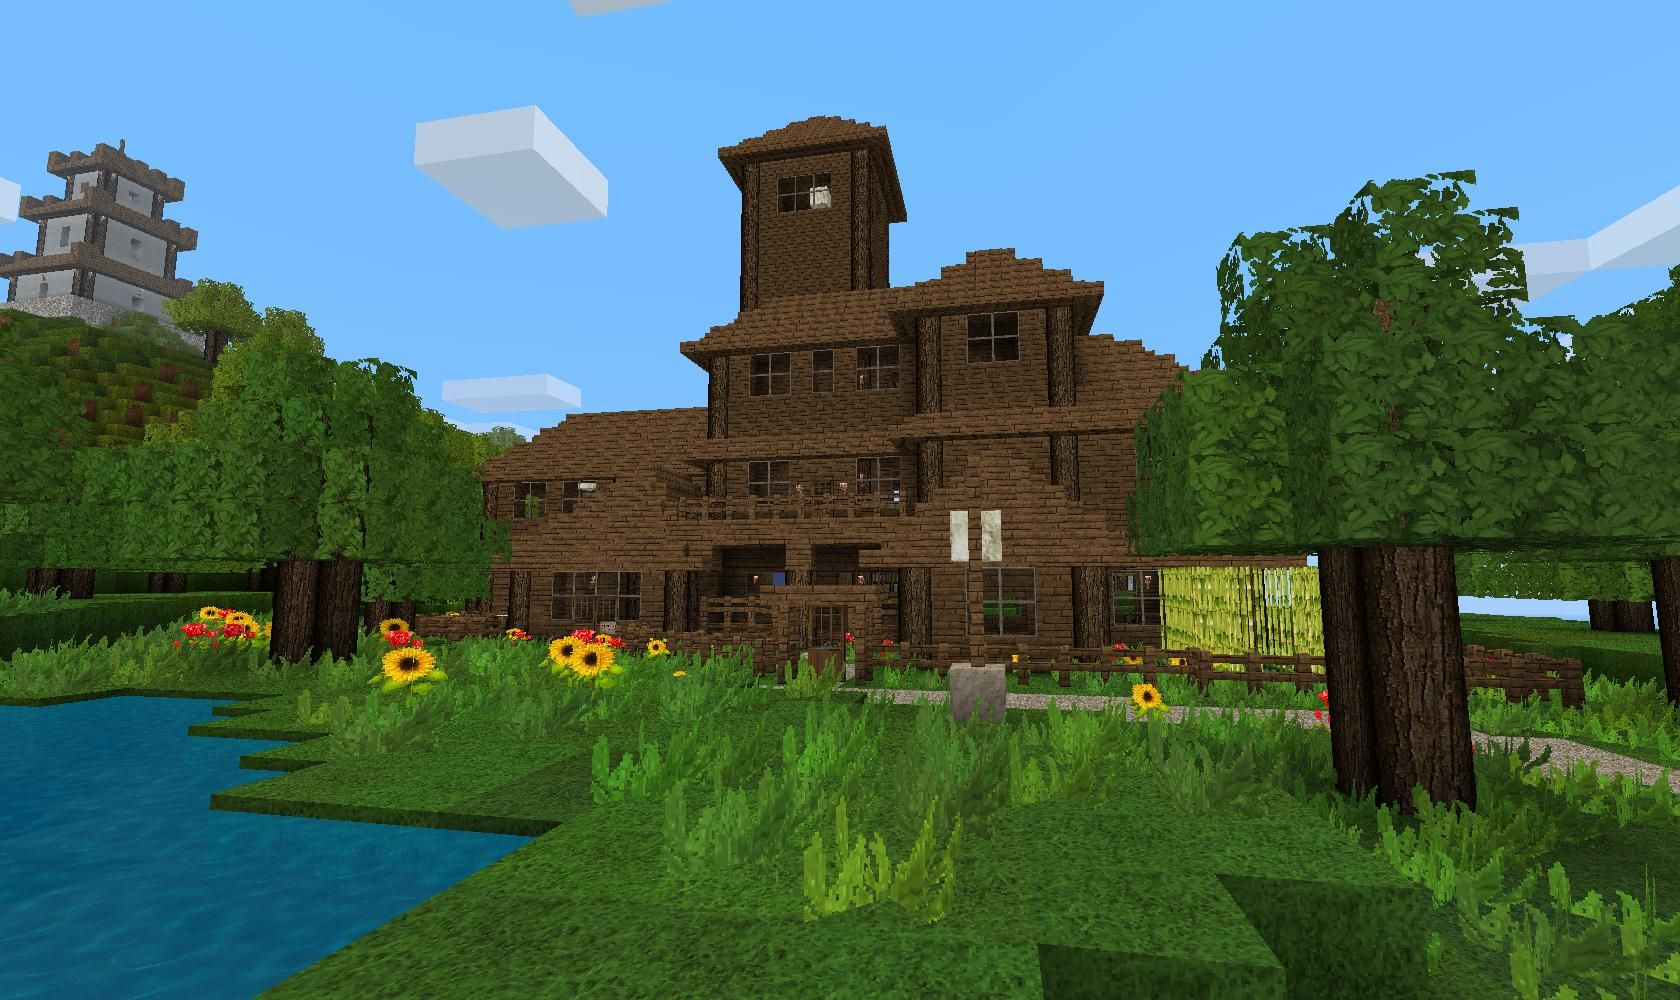 House  Villa And A Ship  100  Legit   26 Images   - Screenshots - Show Your Creation